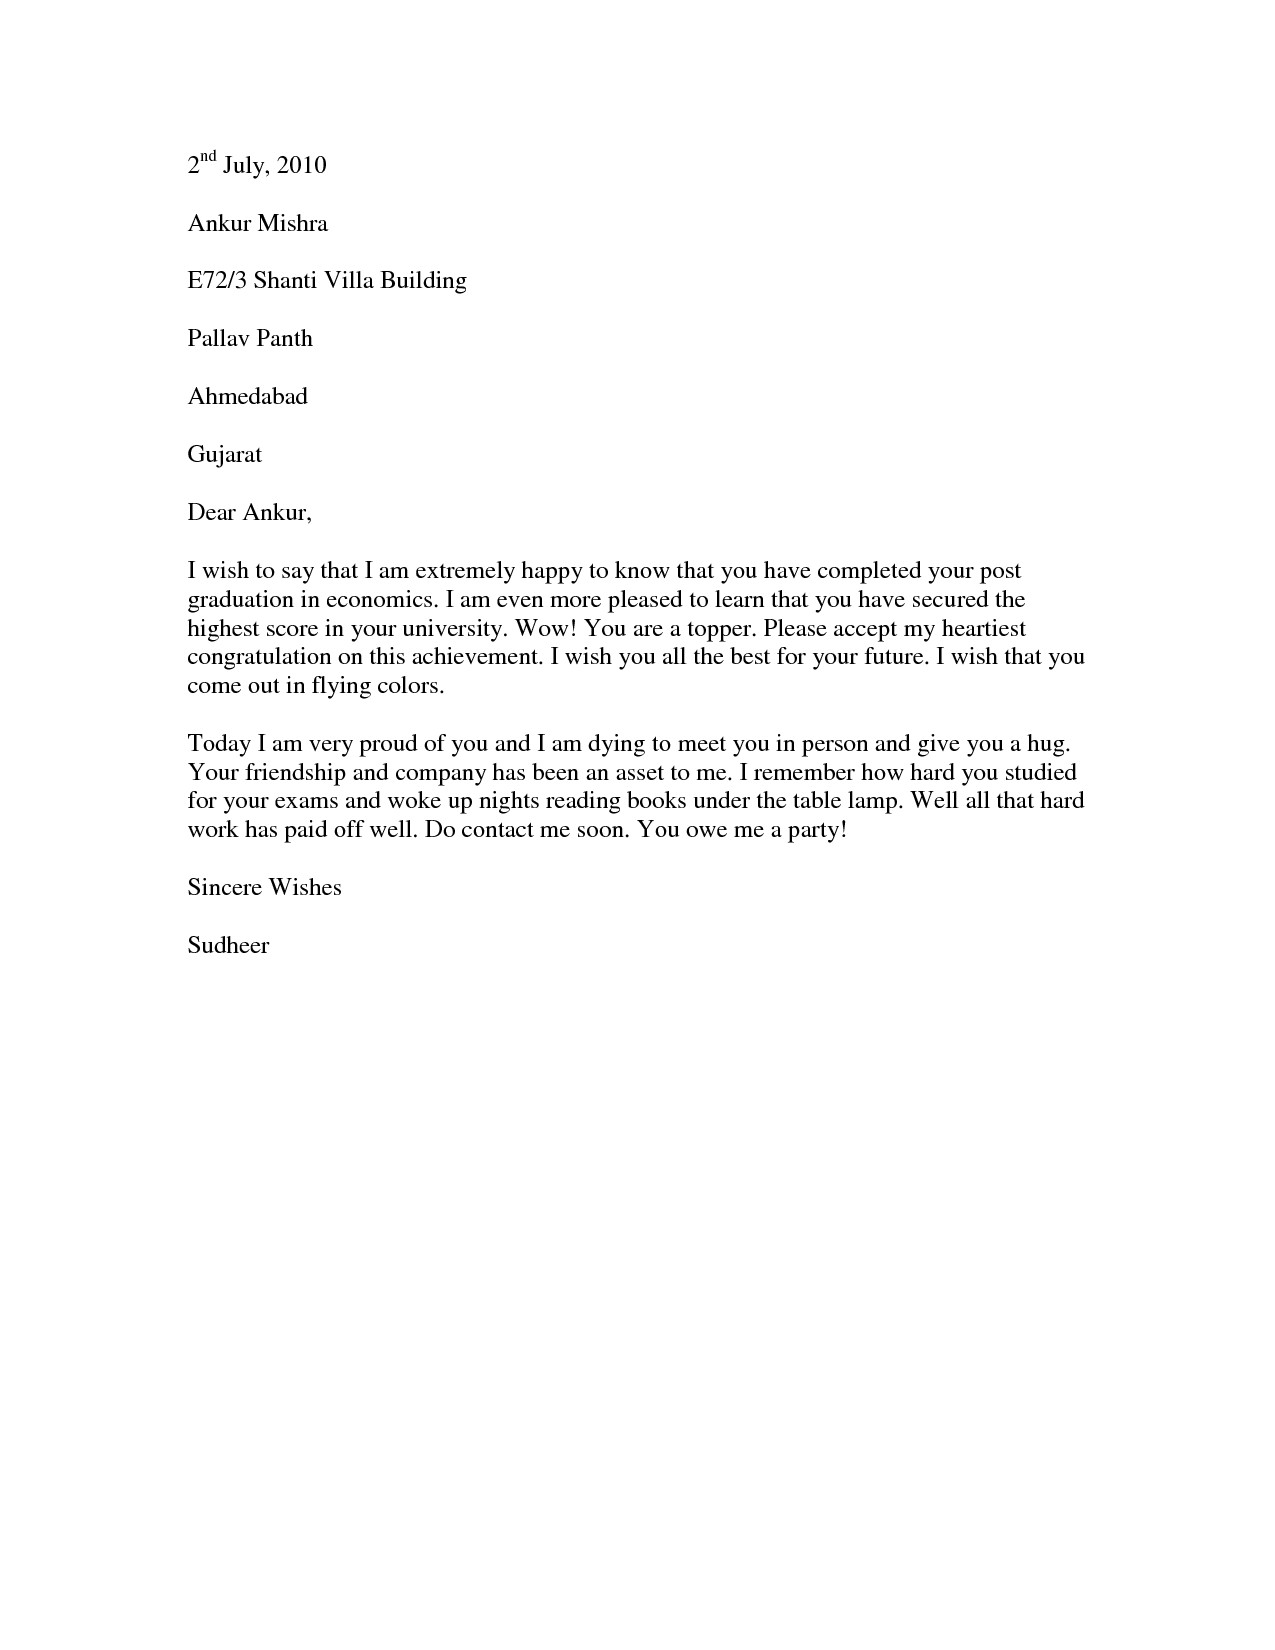 best images about congratulations letters 17 best images about congratulations letters colleges formal business letter and letter sample